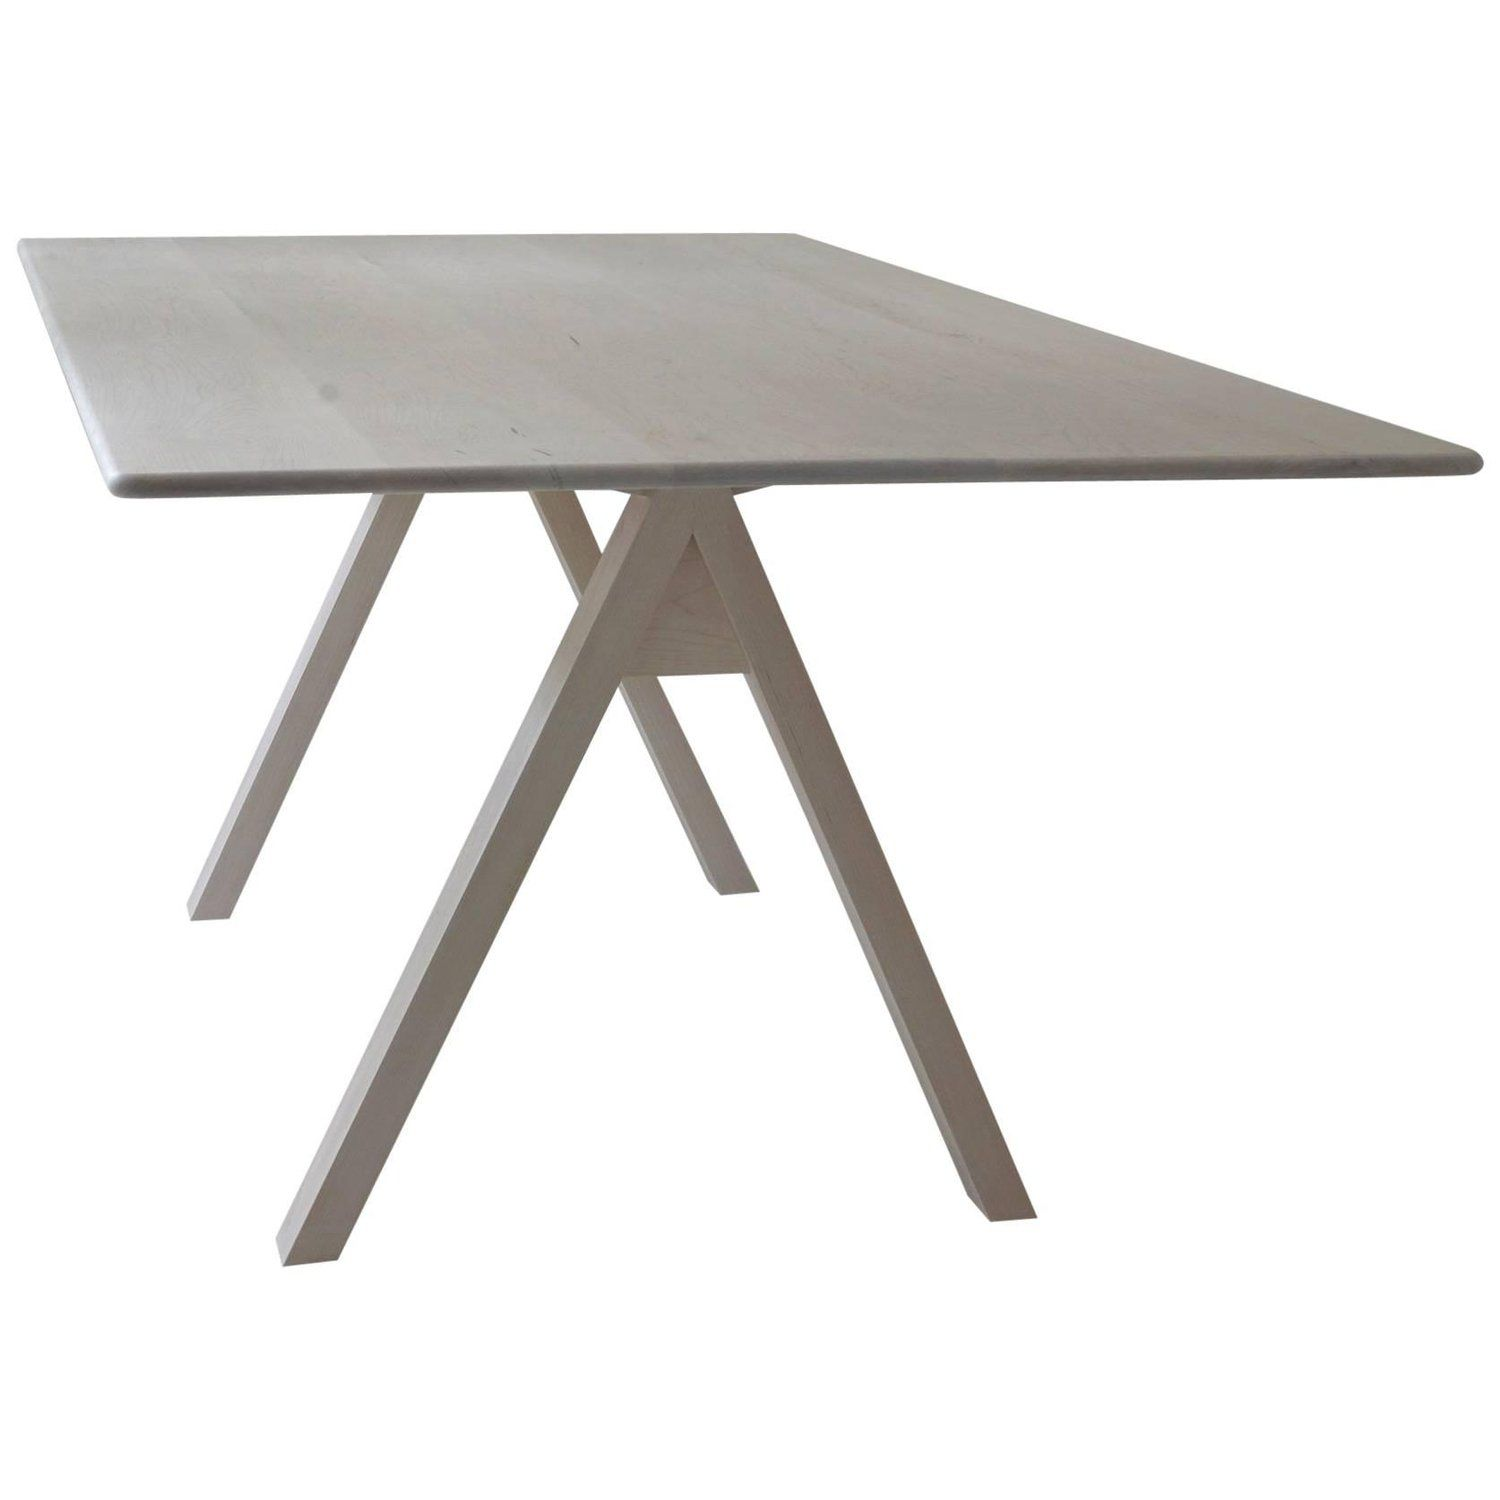 Spectral Dining Table / Bleached Maple Minimal Modern Trestle Table ...